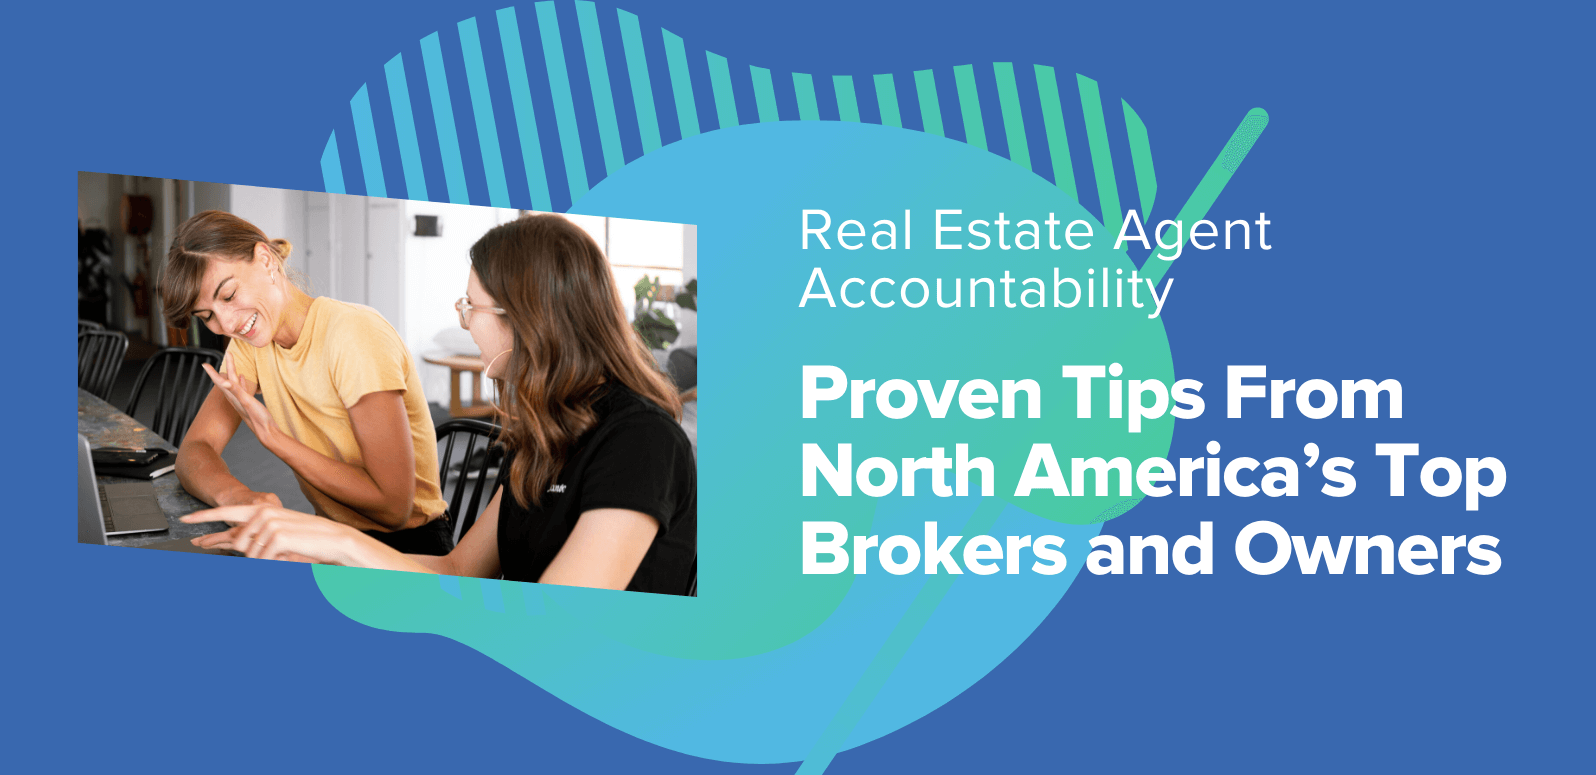 Real Estate Agent Accountability: Proven Tips From North America's Top Brokers and Owners